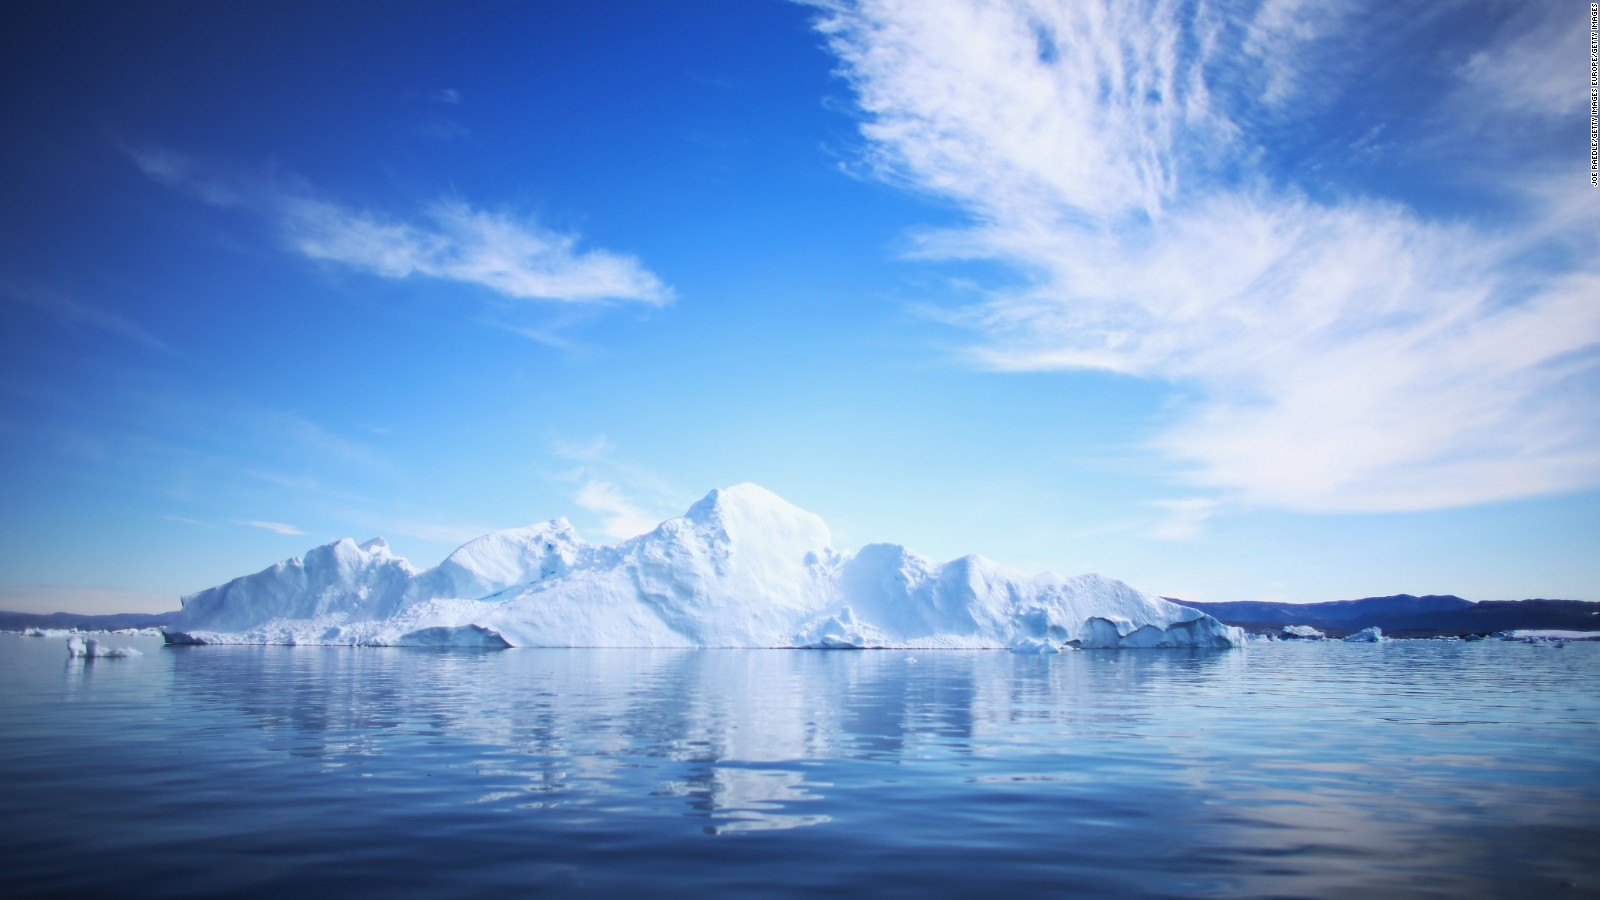 hemingway iceberg geography of antarctica having scf in place is  scientists highlight deadly health risks of climate change com